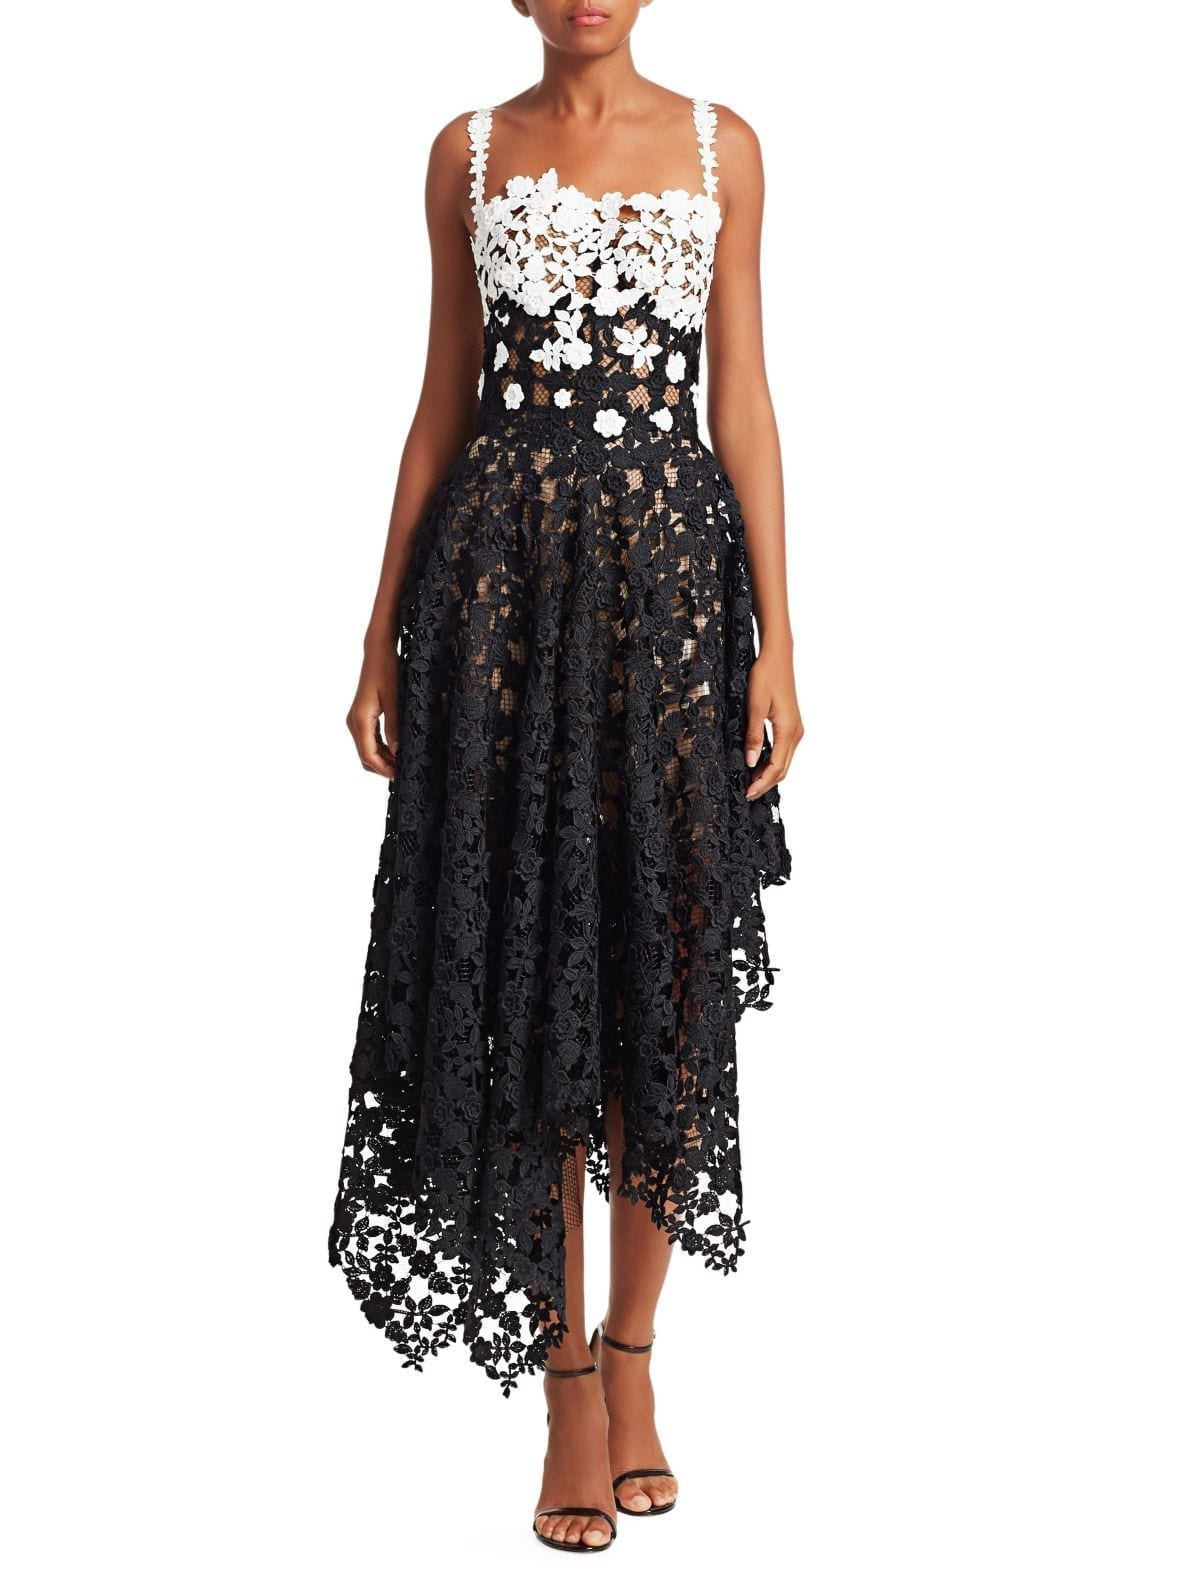 OSCAR DE LA RENTA Colorblock Lace Asymmetric White / Black Dress